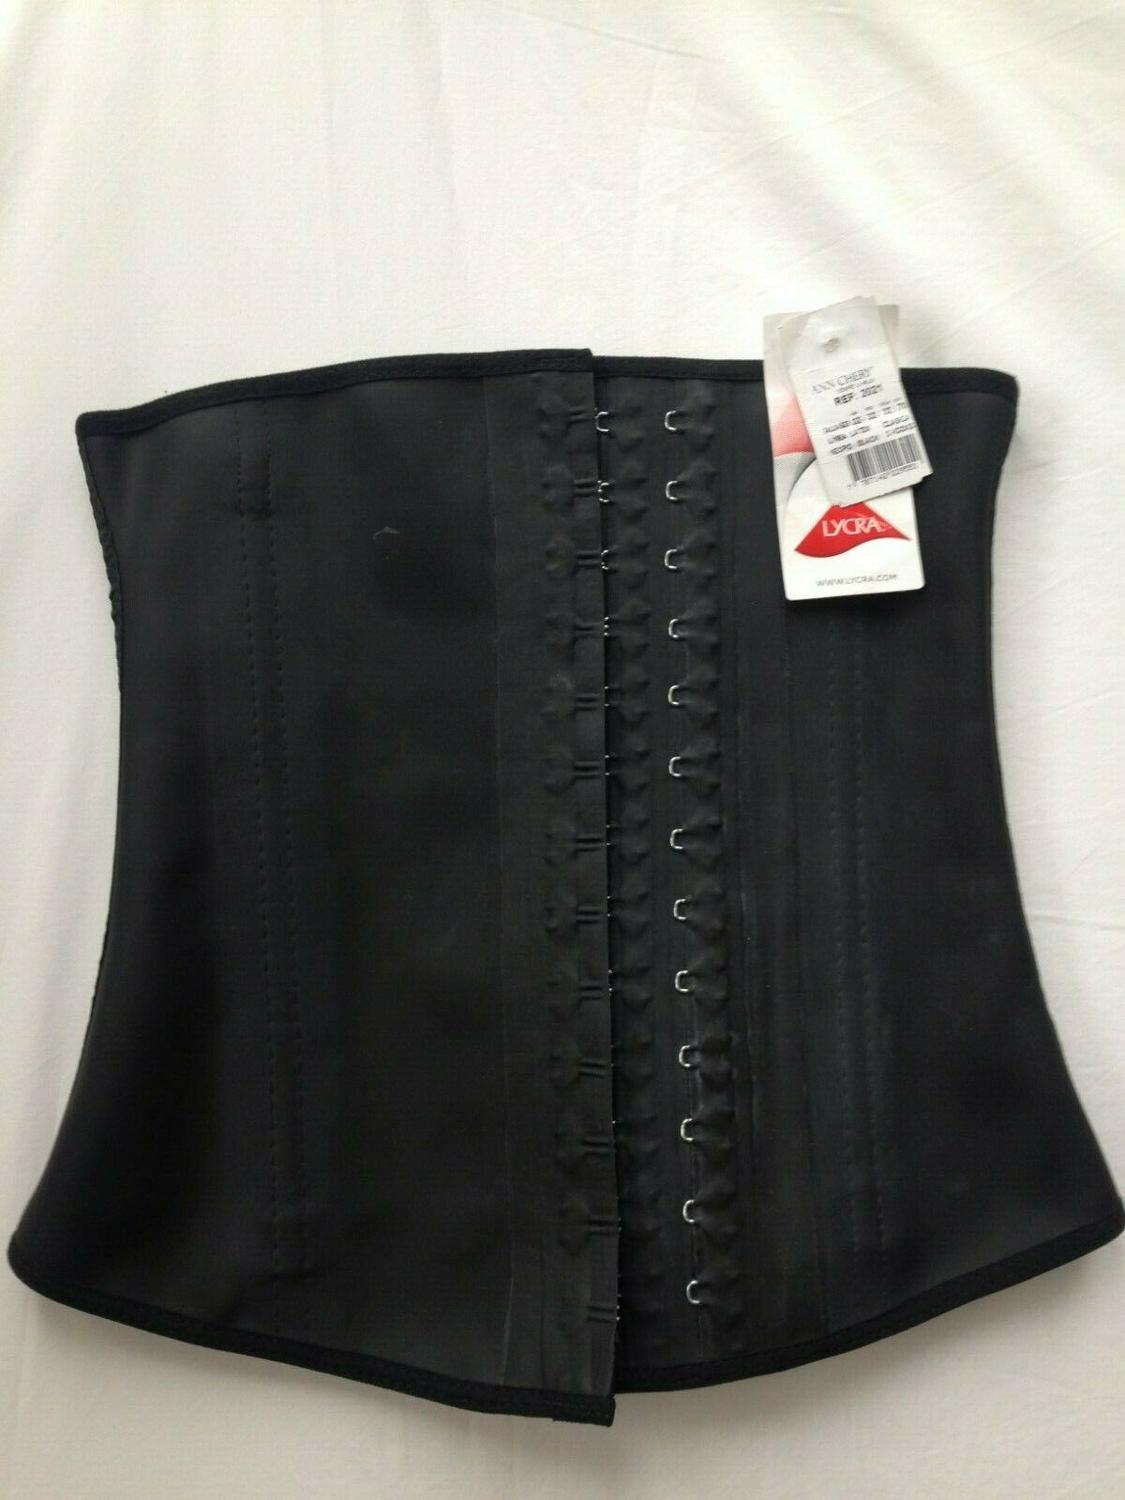 Chaud!! Ann Chery 2025 taille Shaper ~ Latex taille formation Corsets en gros ~ taille Shaper ~ taille formateur - 5